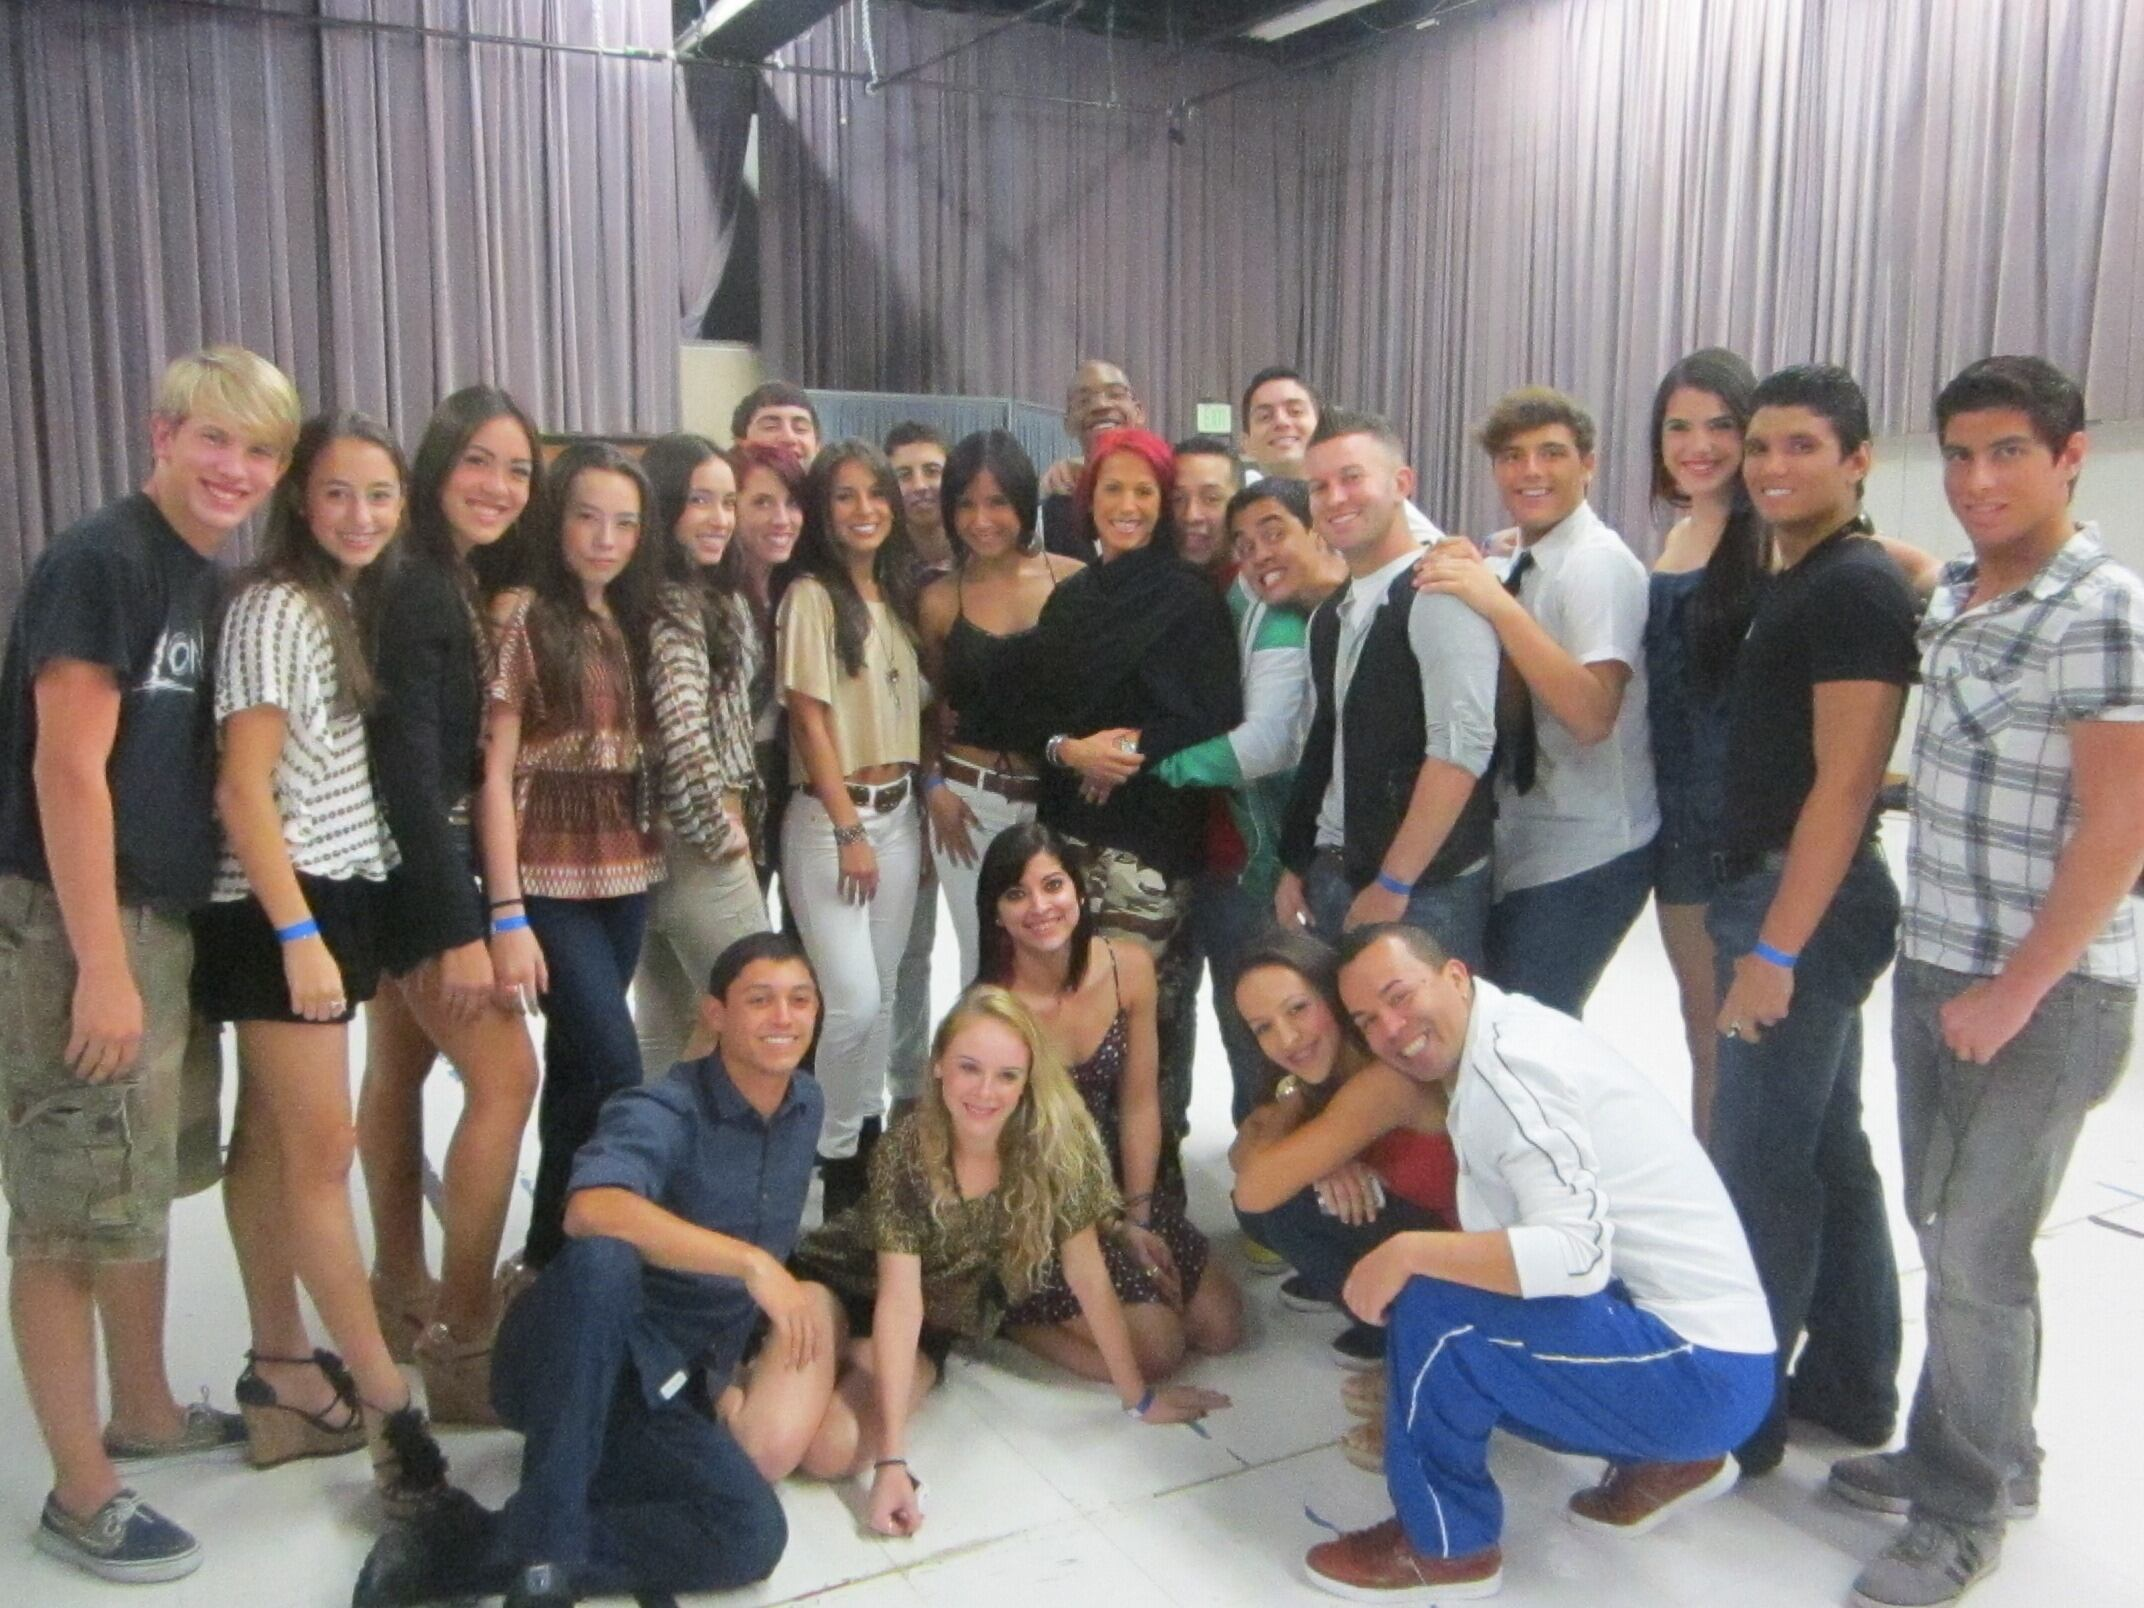 Group Picture In One Of The Rehearsal Rooms!